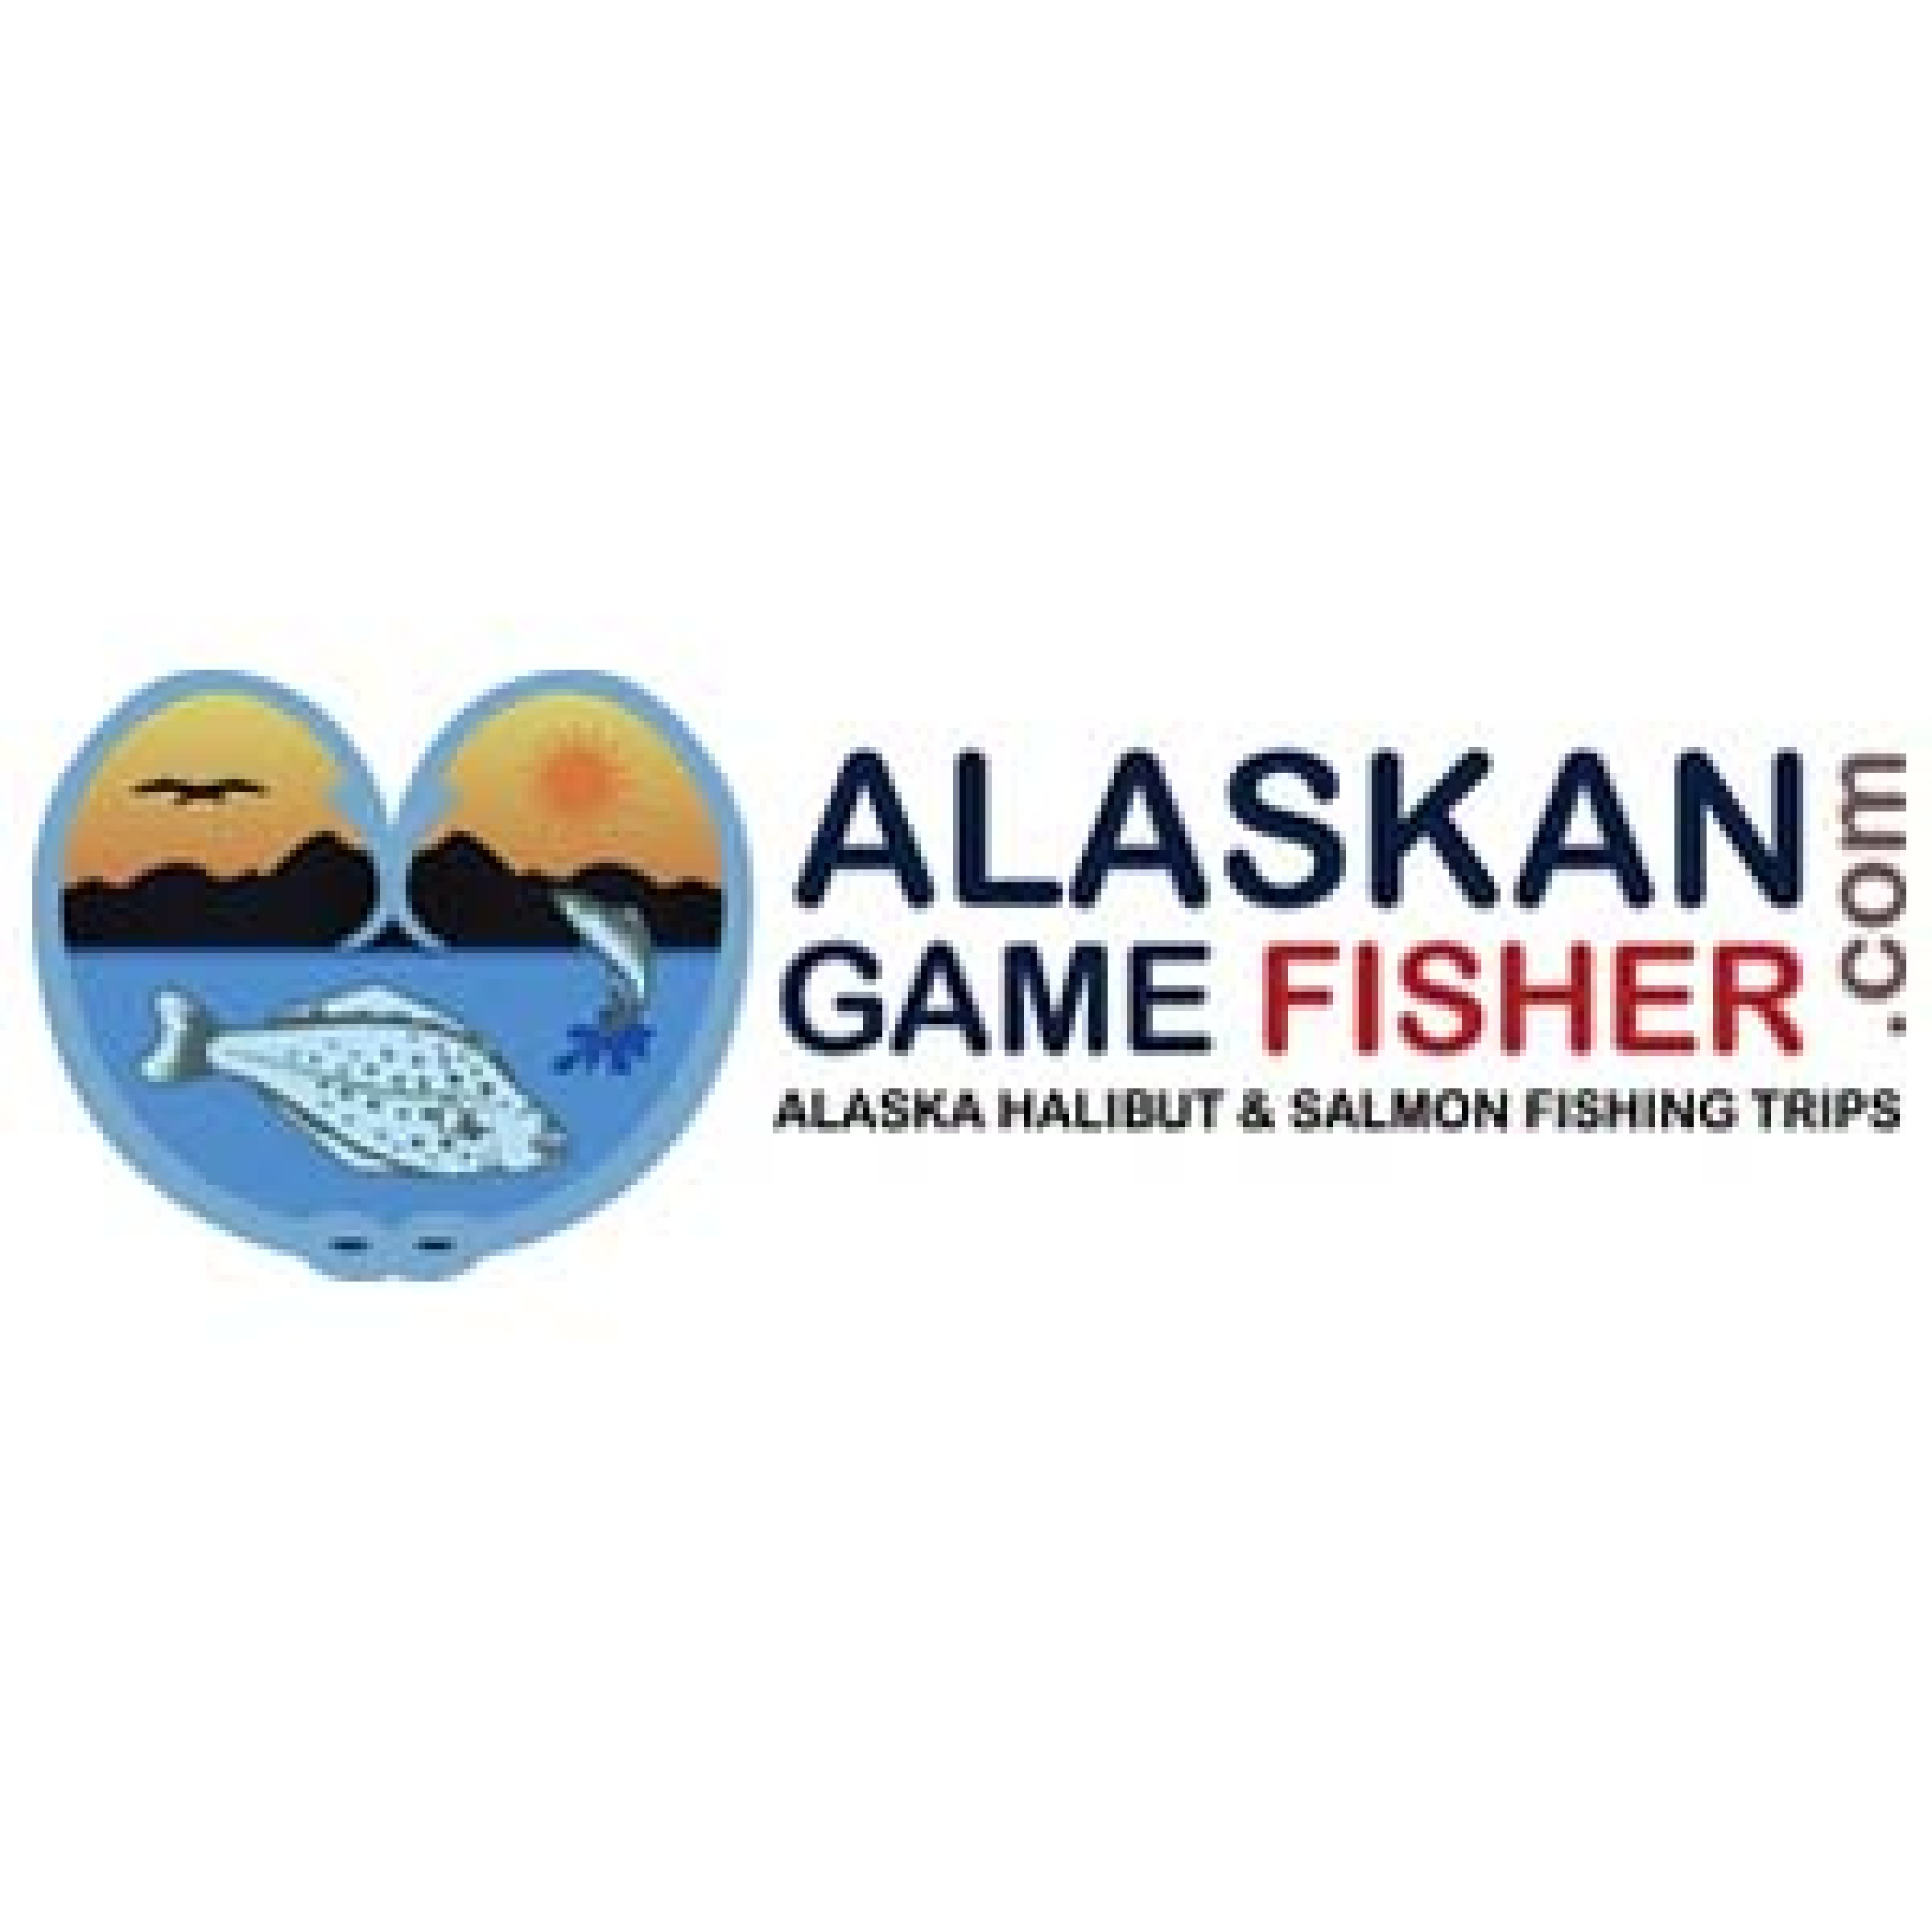 Alaskan Gamefisher photo gallery